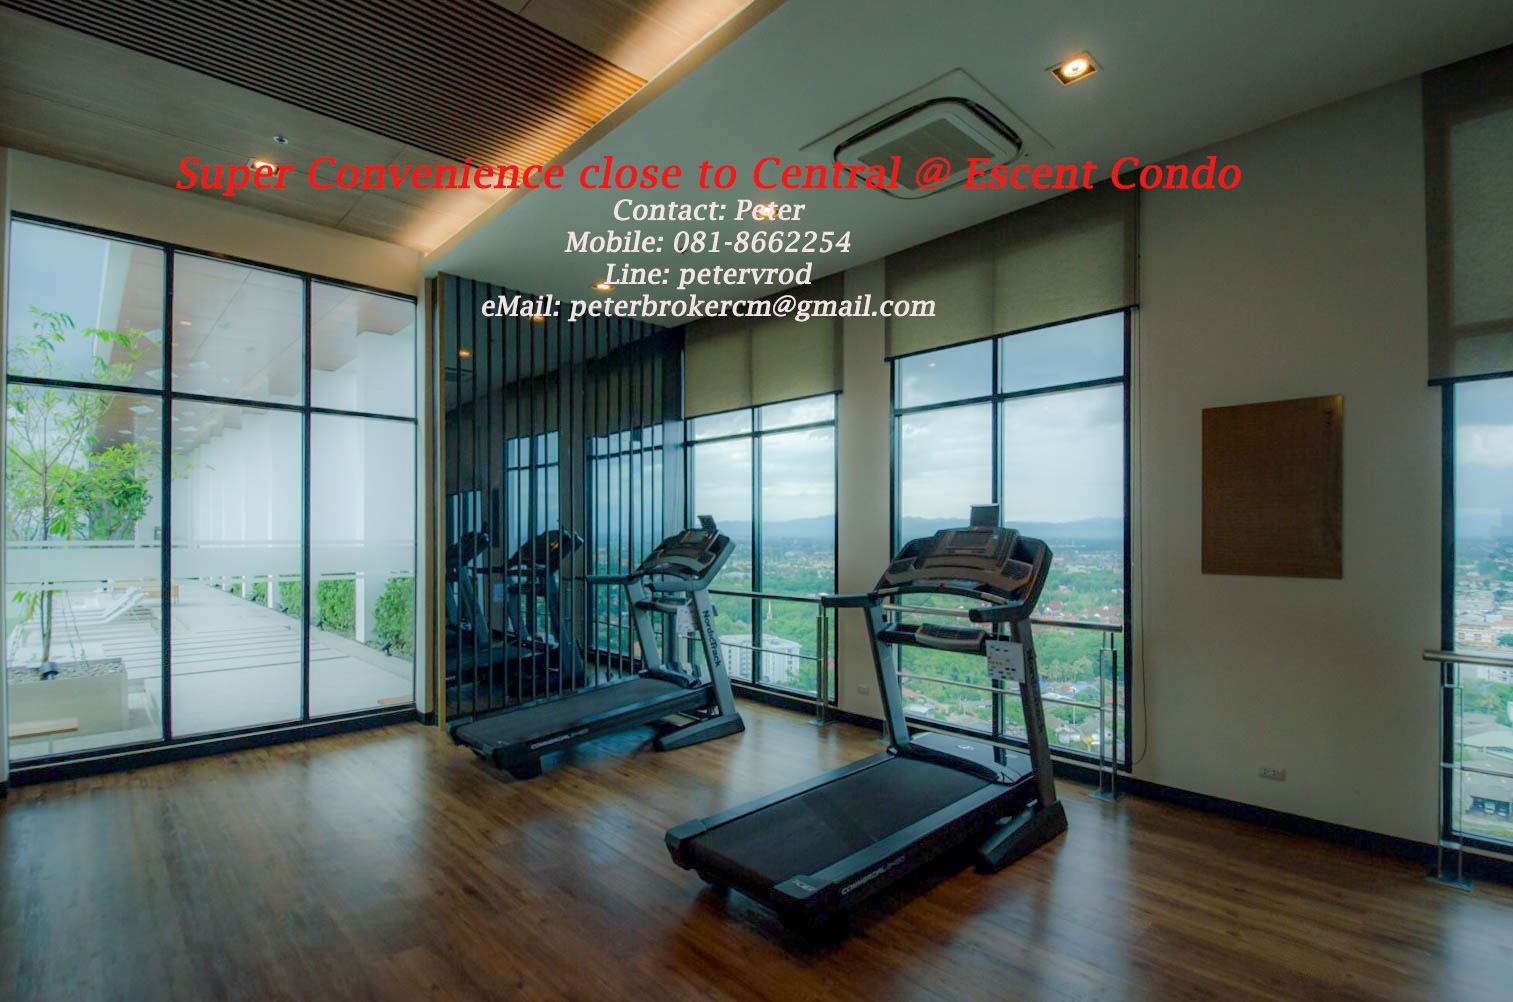 Sale 1 bedroom Escent Condo CPN 35 Sqm 12th floor